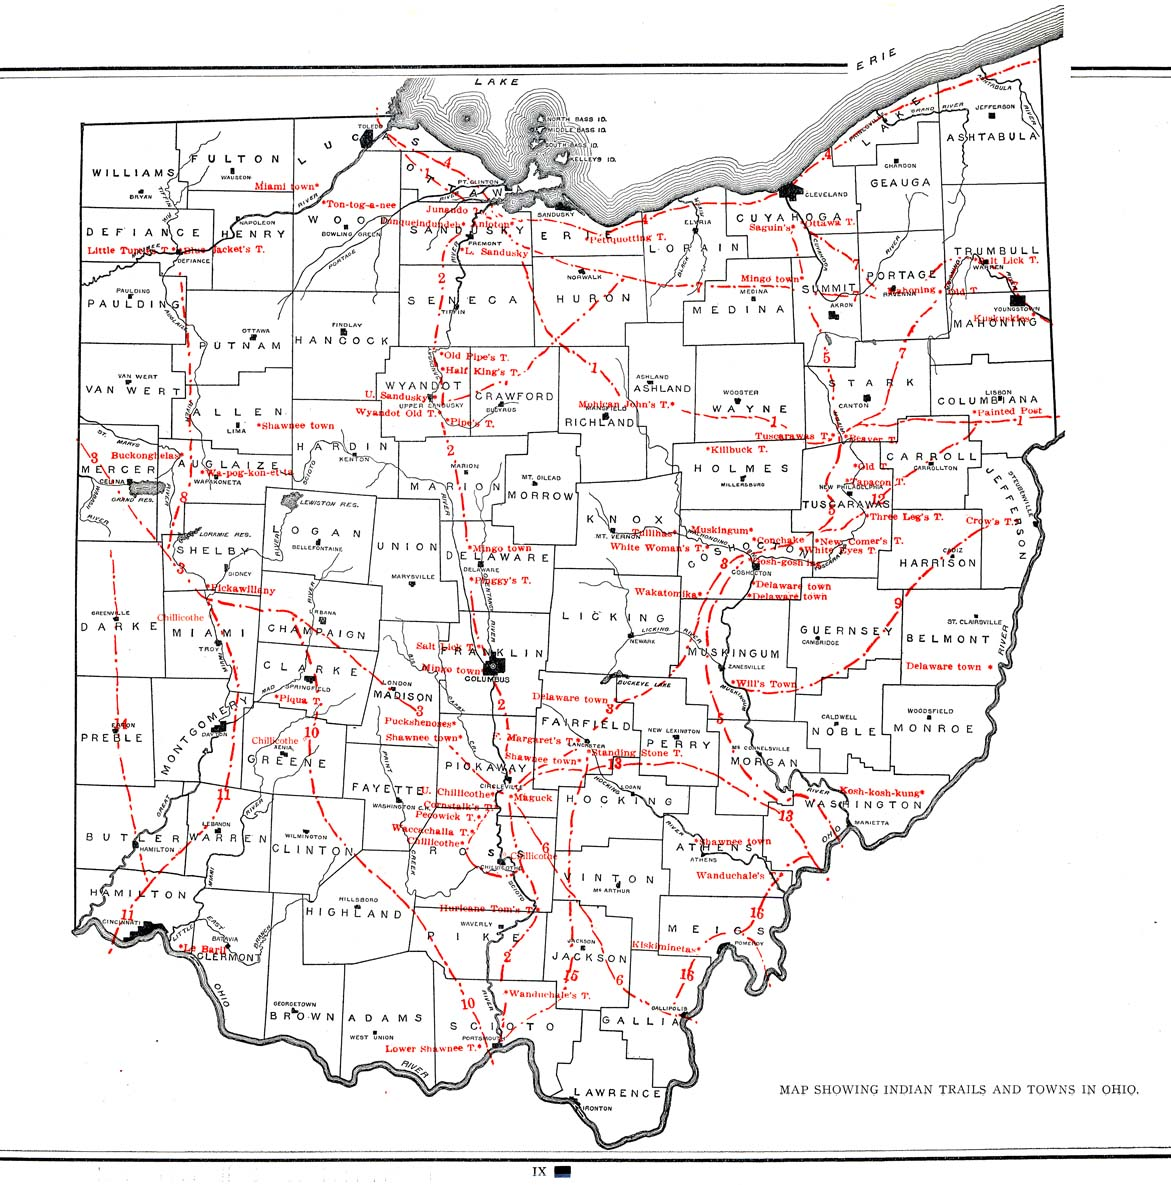 Worksheet. Indian Trails and Towns in Ohio